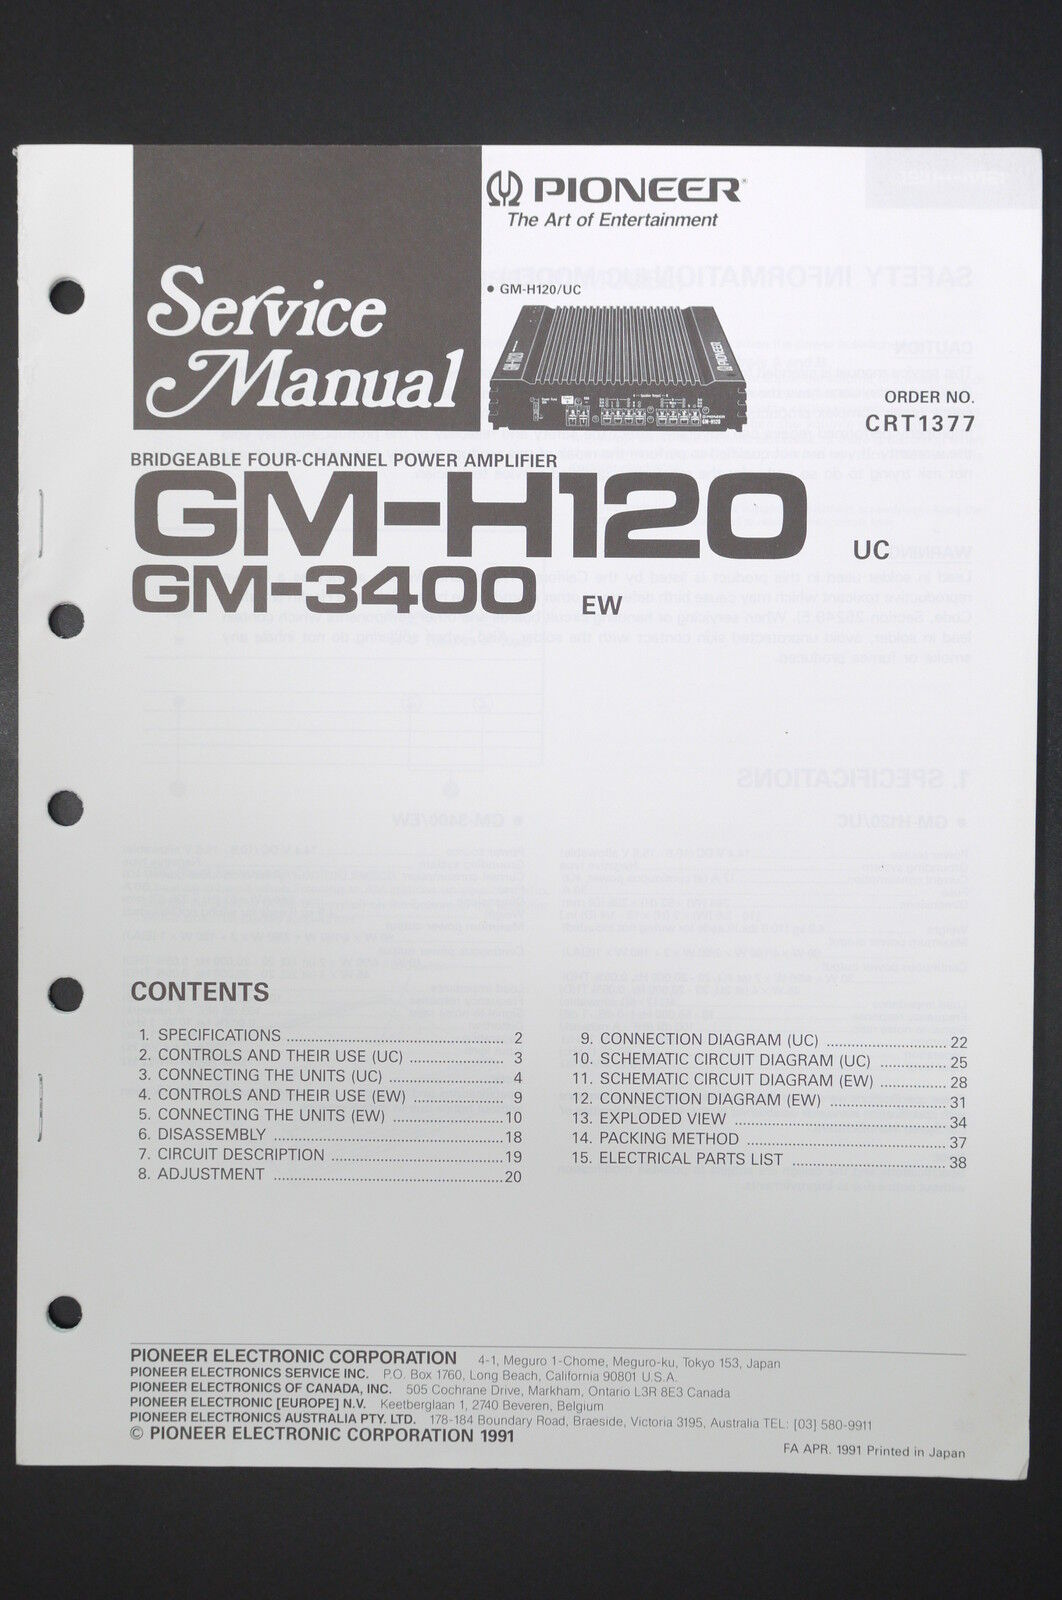 hight resolution of pioneer gm h120 gm 3400 power amplifier service manual wiring